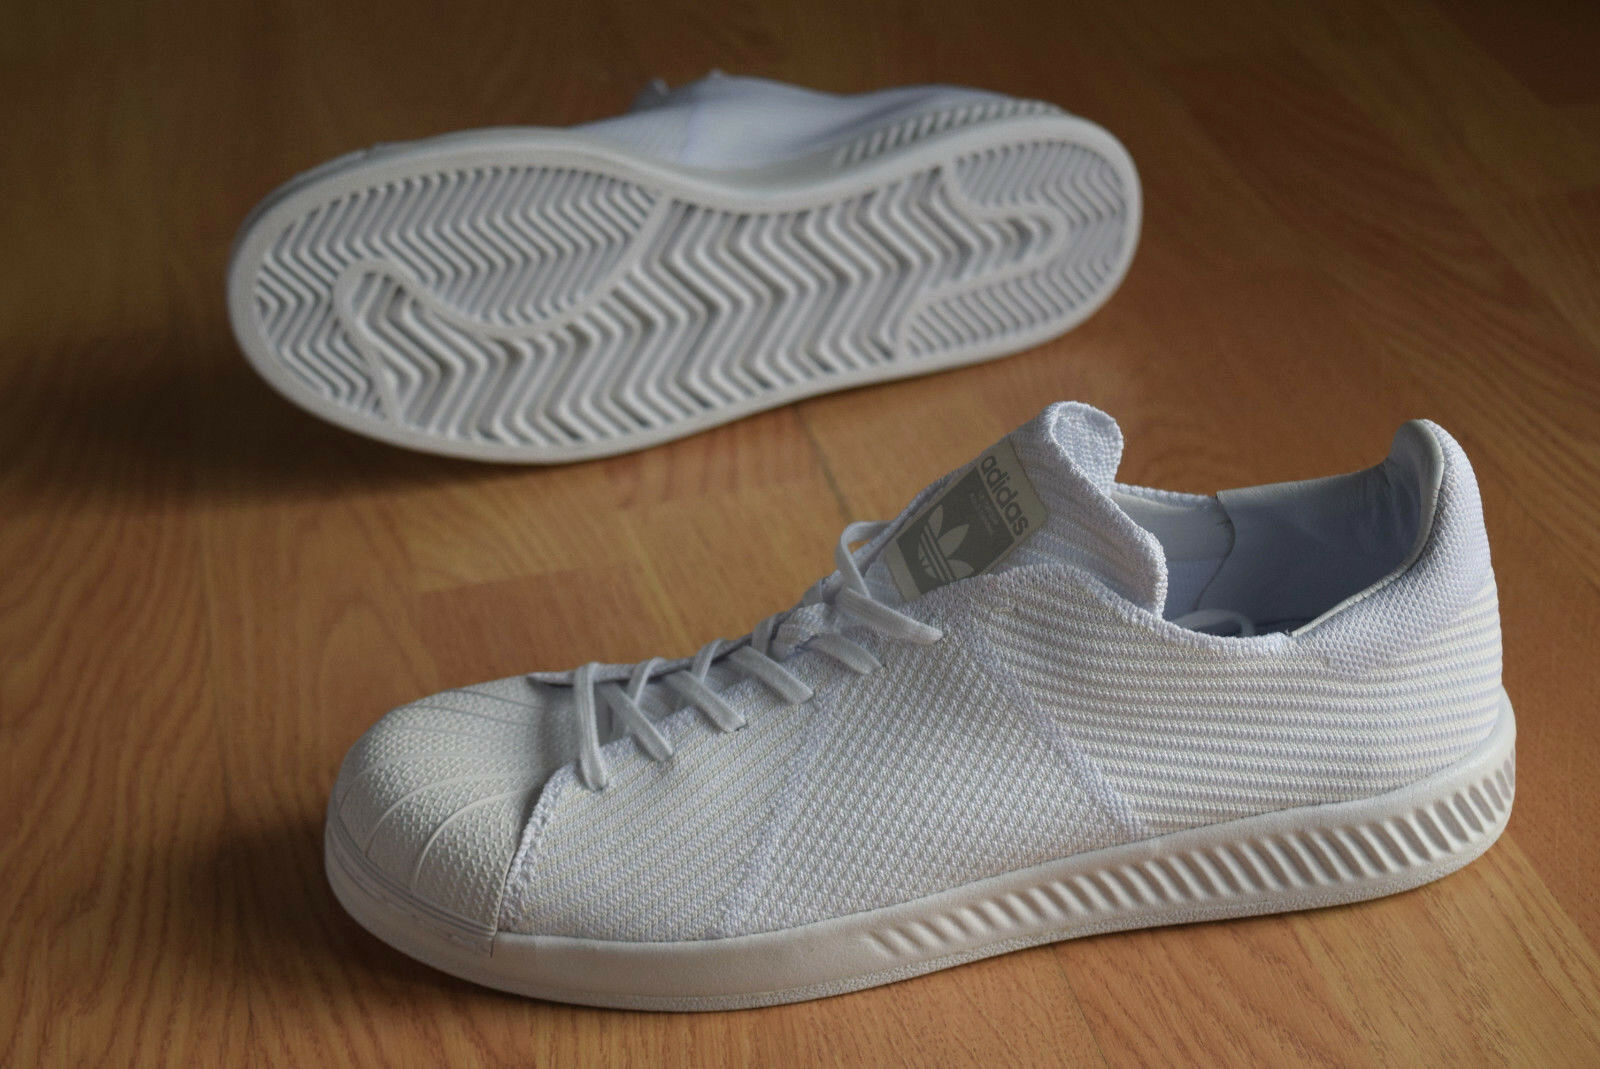 adidas Superstar Bounce PK 36,5 38,5 40 42 43 44 45 47 stan smith campus S82240 The most popular shoes for men and women